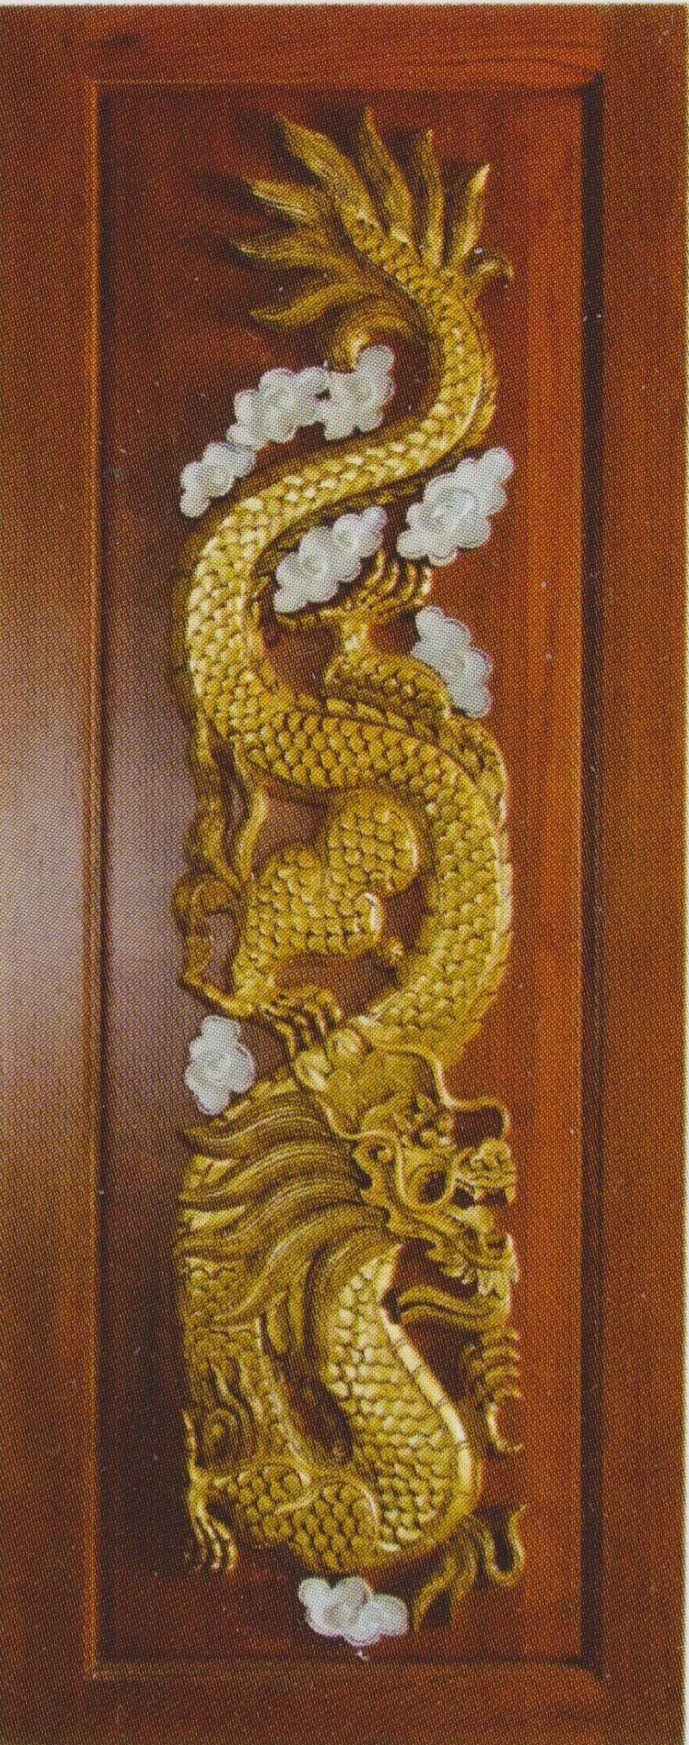 Modern custom carving solid teak wood interior exterior entry entrance front french doors design with gold dragon details. - - Amazon.com